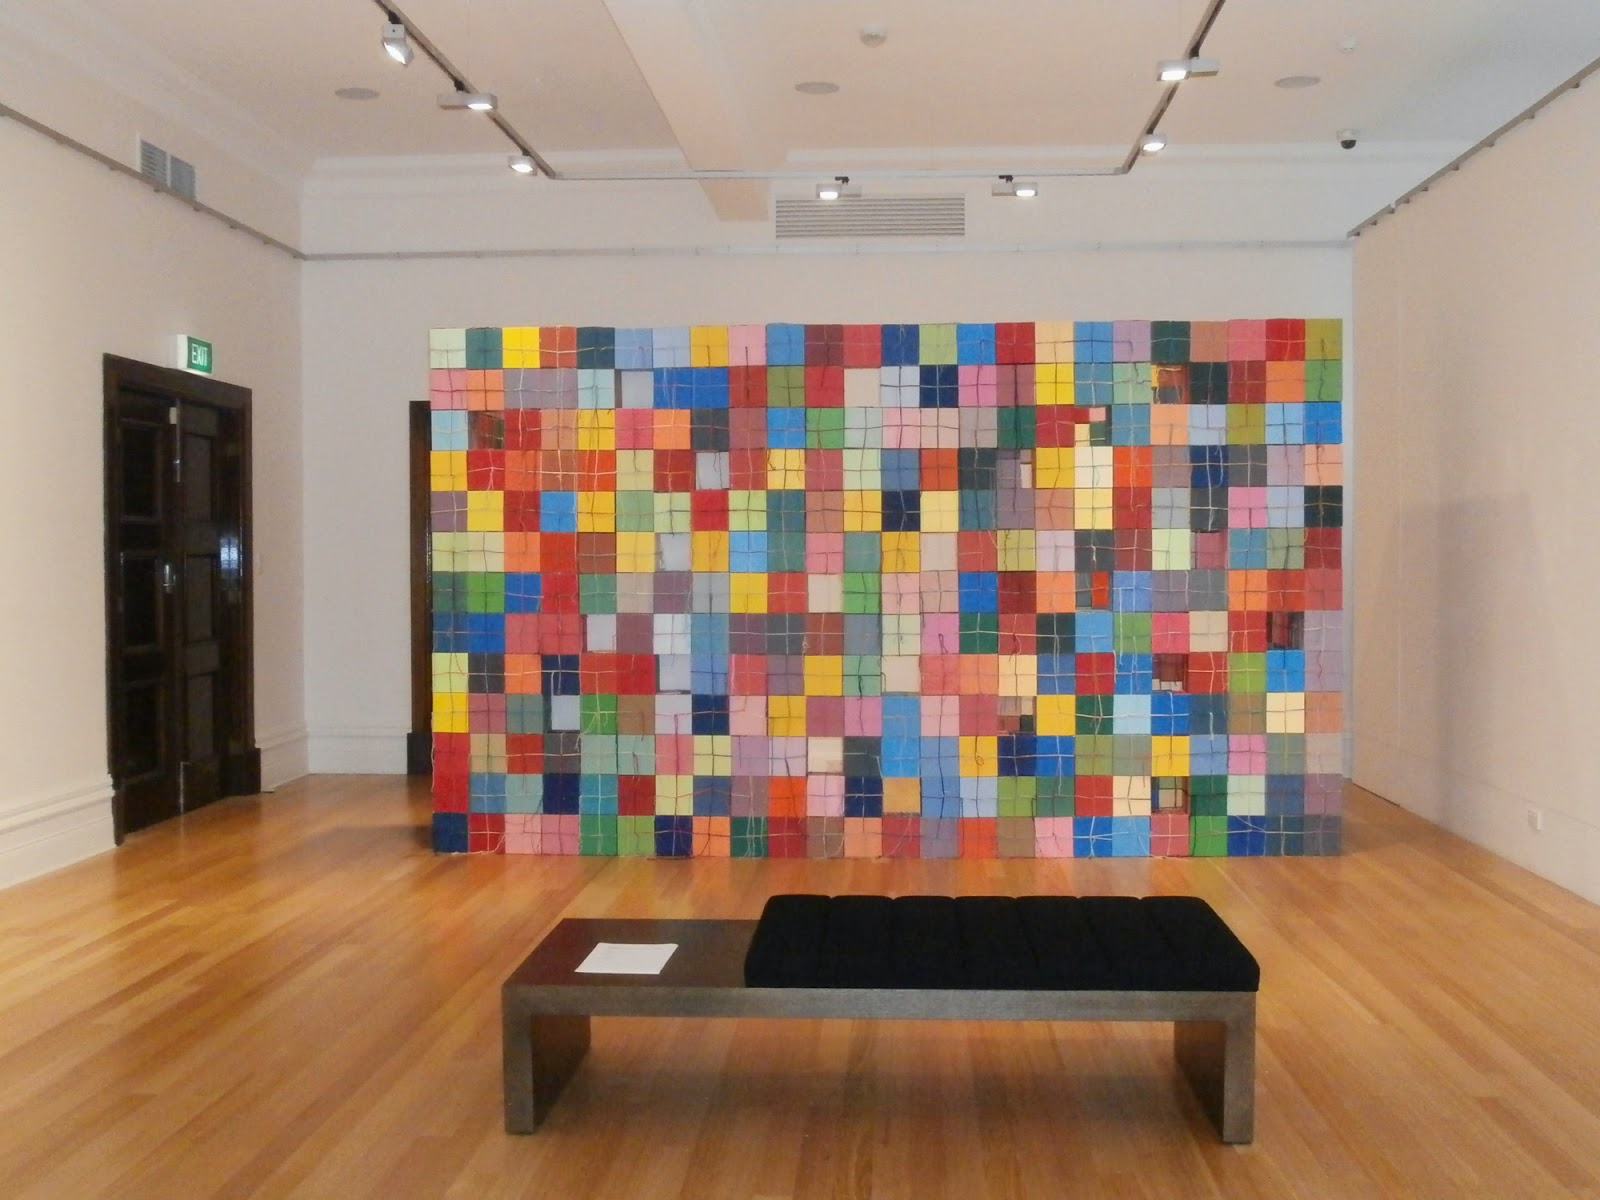 cube wall, eclectic, bayside gallery, melbourne, francesca mataraga, sarah newall, art, painting, sculpture, geometric abstraction, non objective, installation, kate mackay